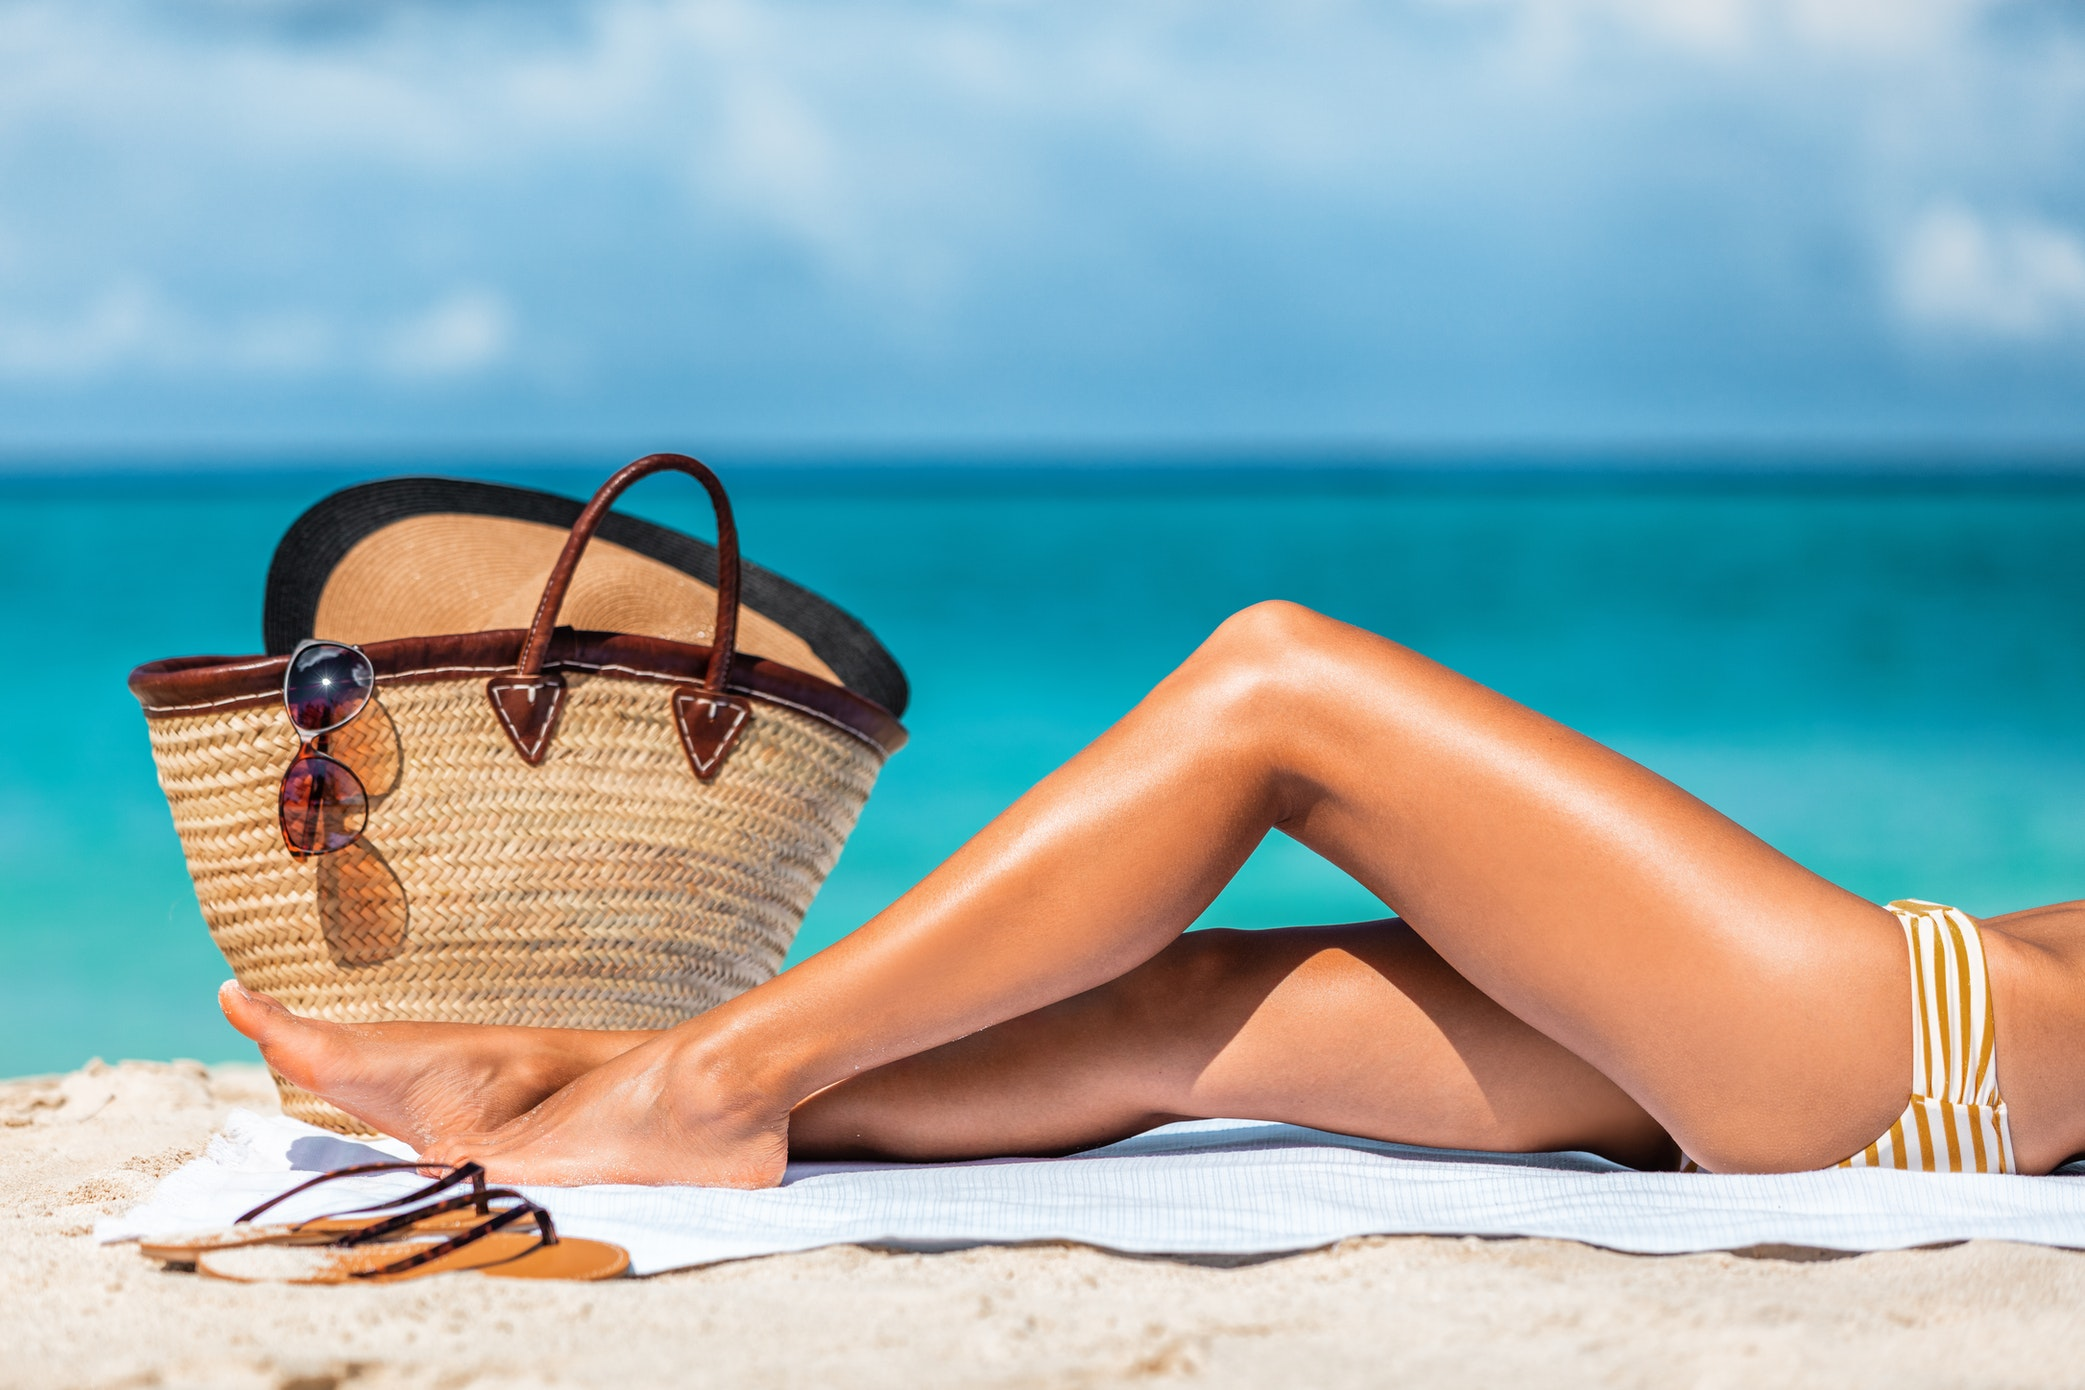 Los Angeles Leg Liposuction: What To Weigh Before Deciding